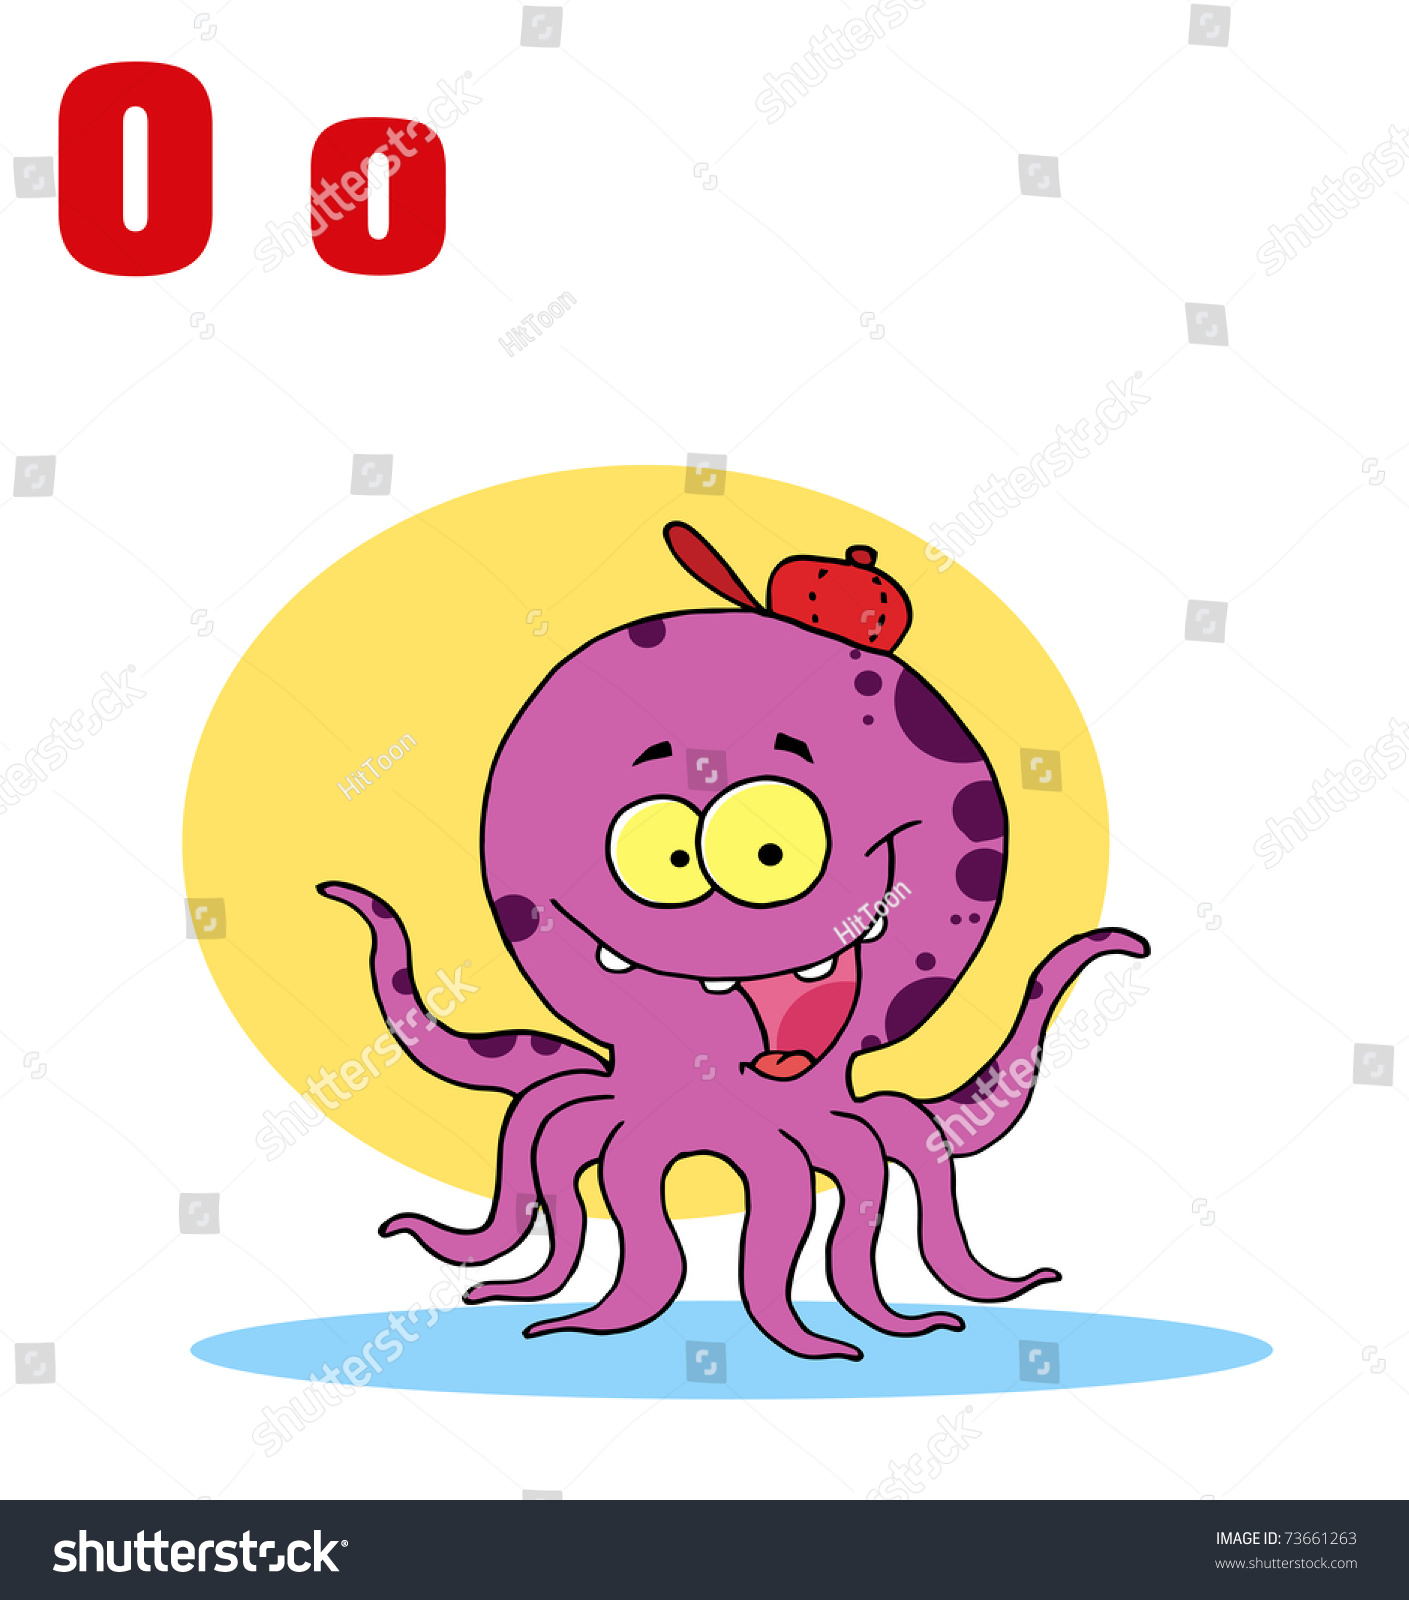 Funny Cartoons Alphabet-Octopus With Letters O | EZ Canvas